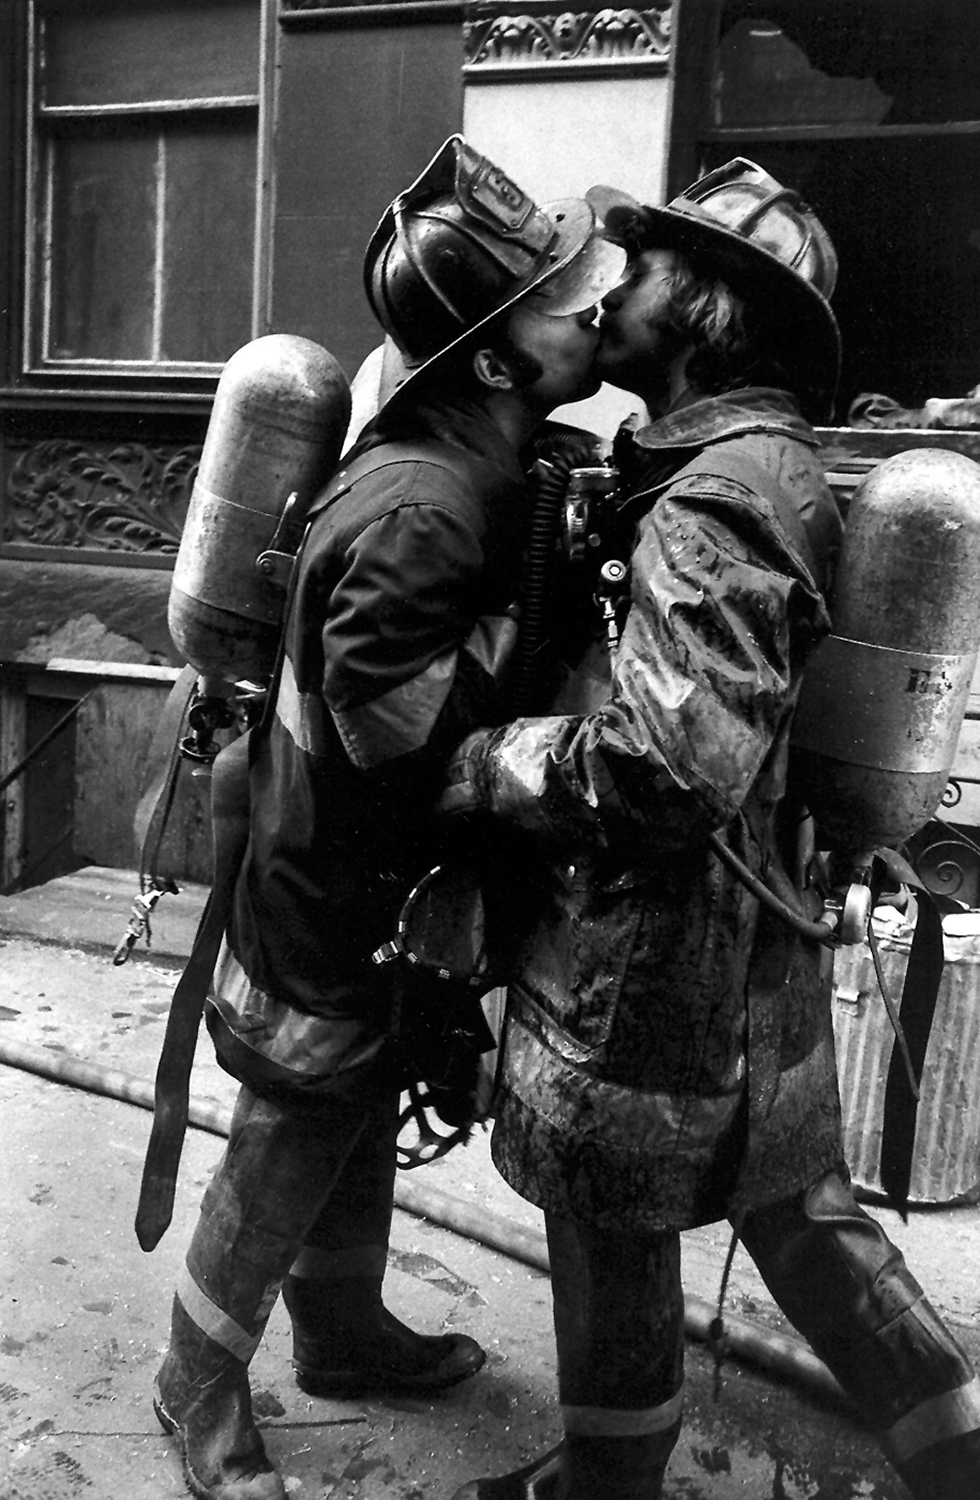 Brother Firemen (kissing fm).jpg